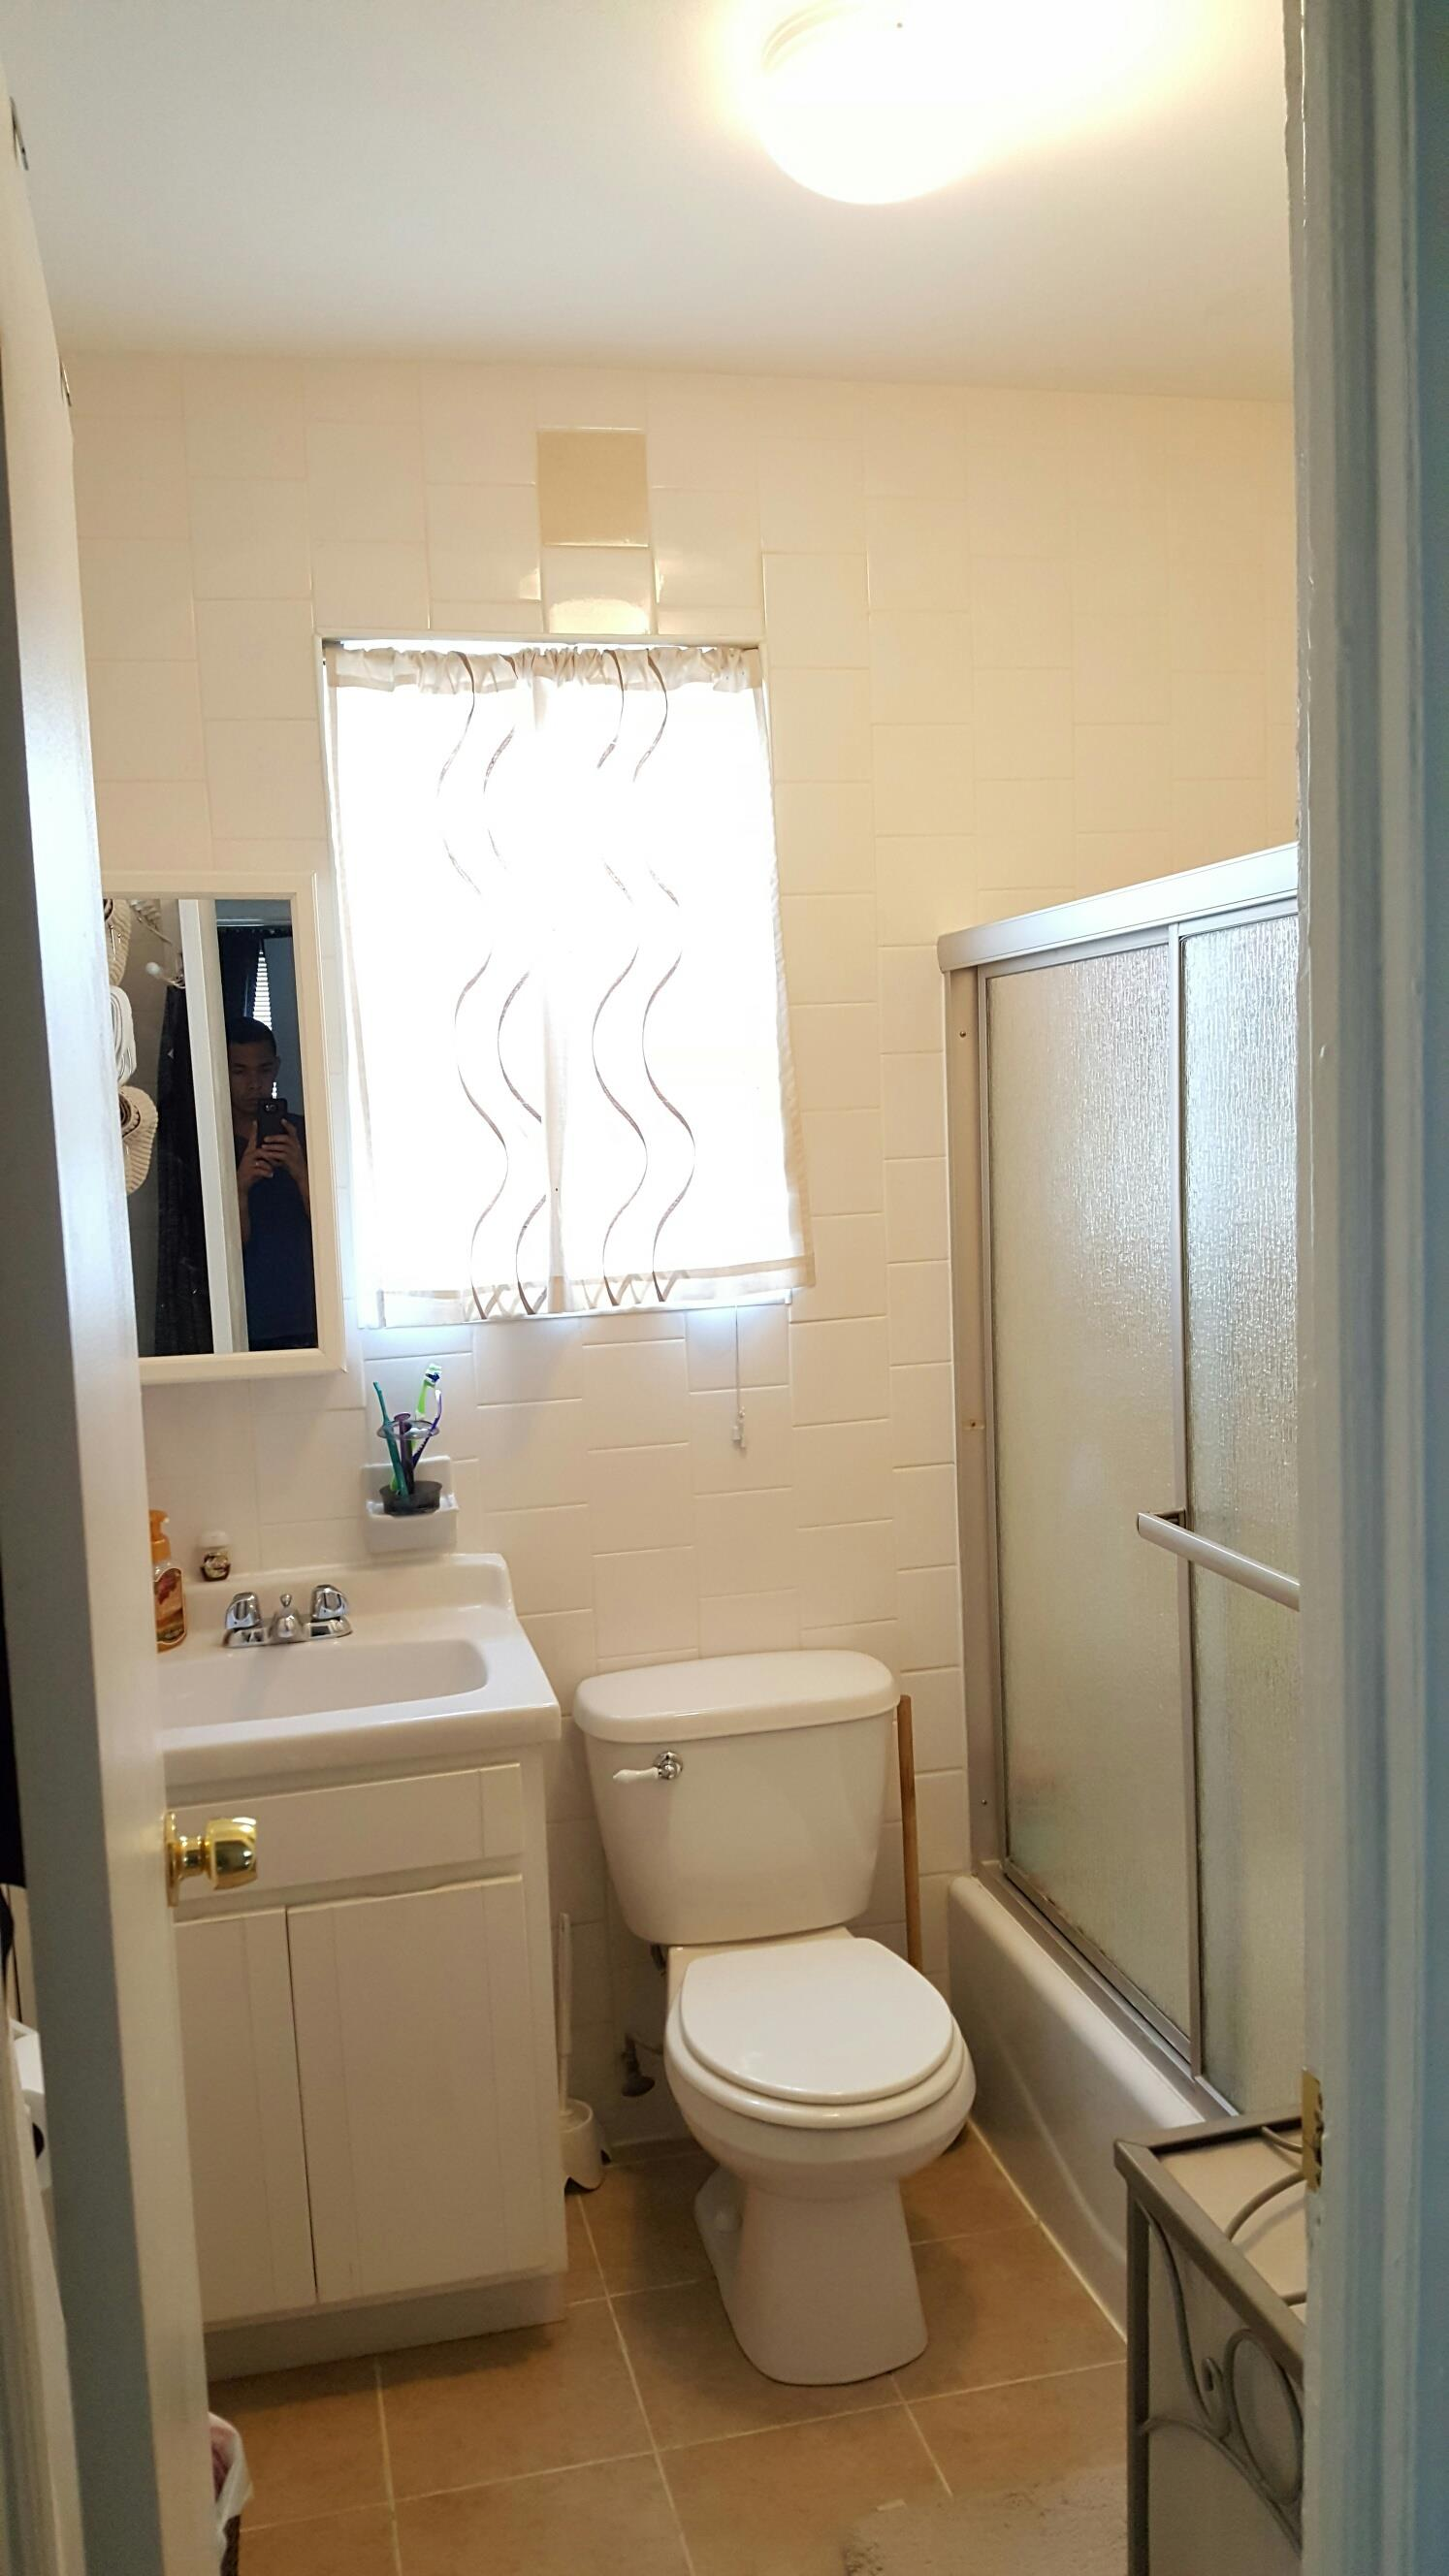 Additional photo for property listing at 218 62nd Street  Brooklyn, New York 11220 United States